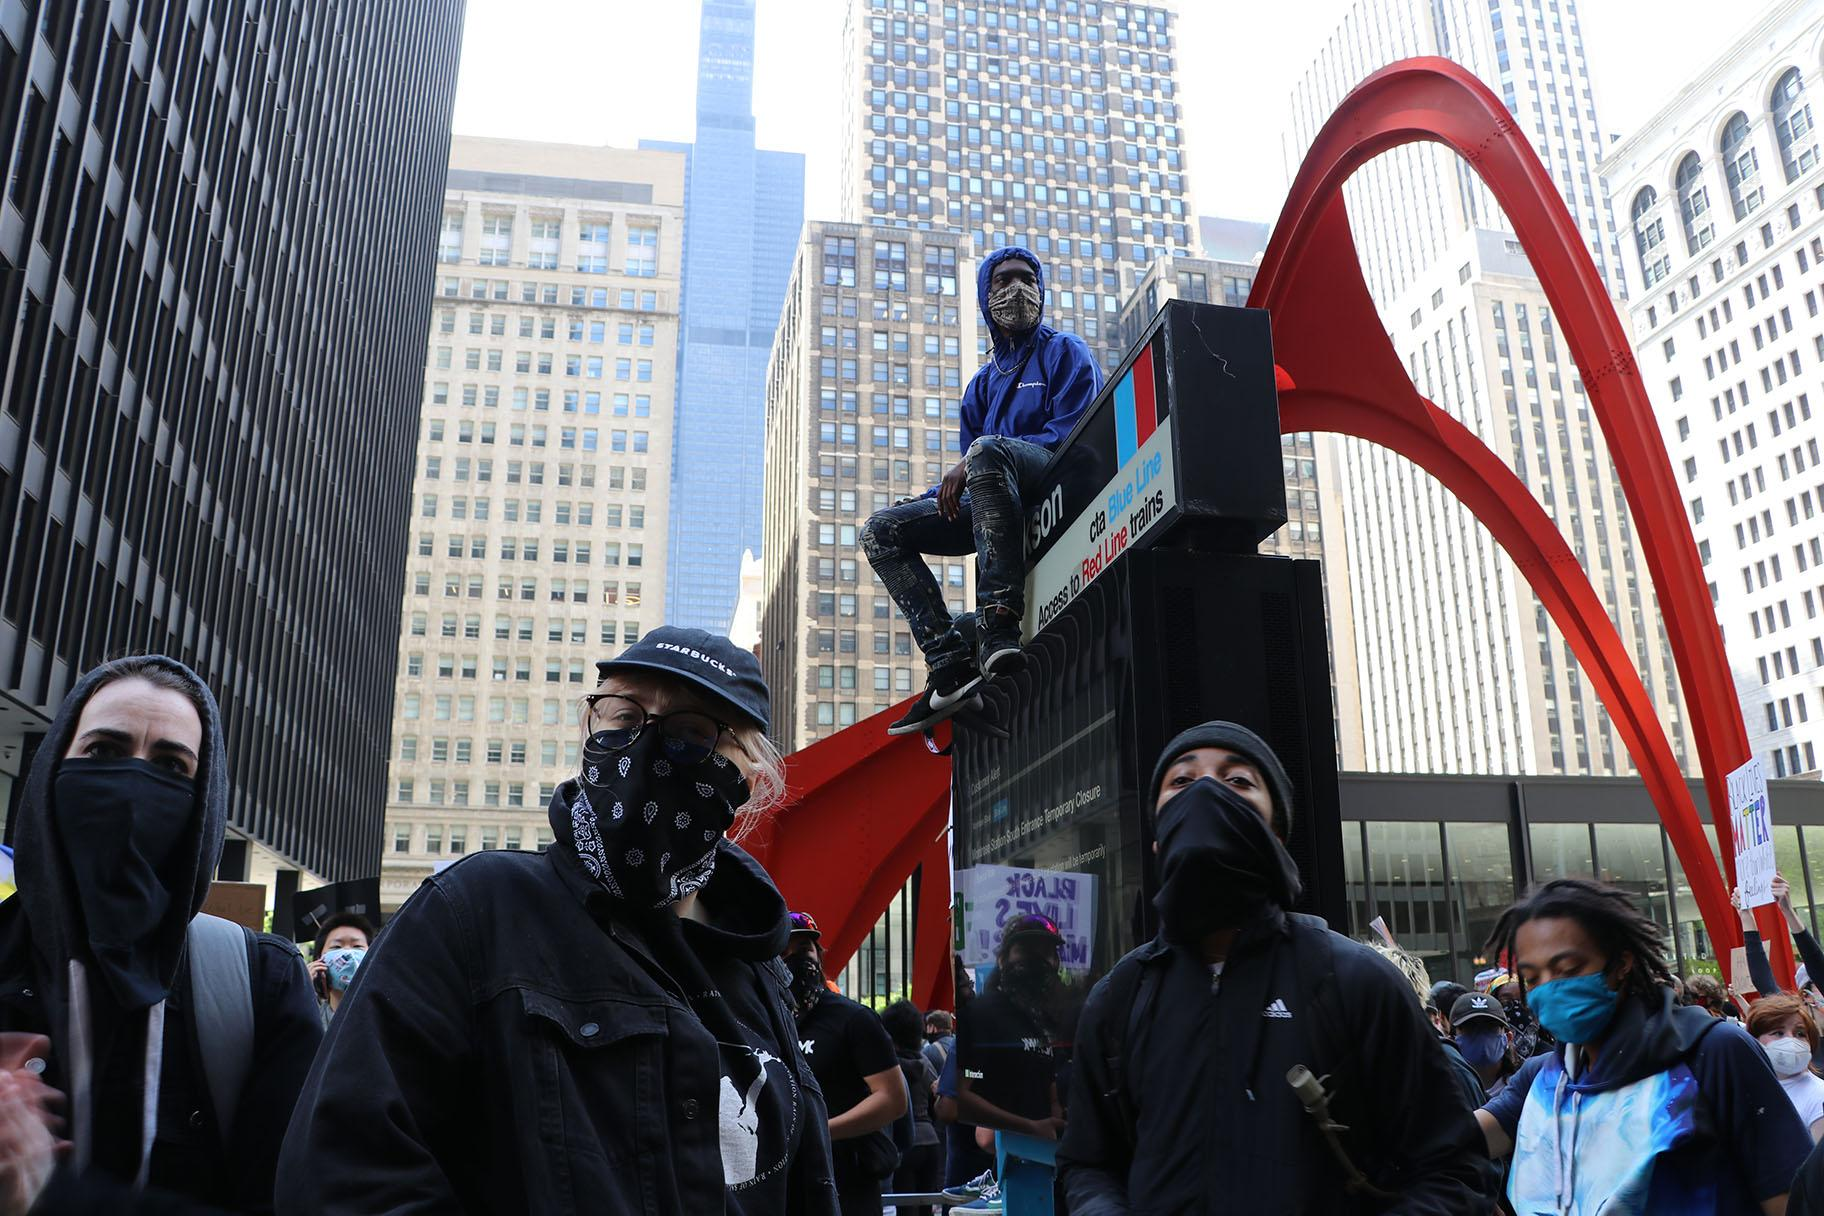 A protester sits on a CTA sign in front of Federal Plaza. (Evan Garcia / WTTW News)